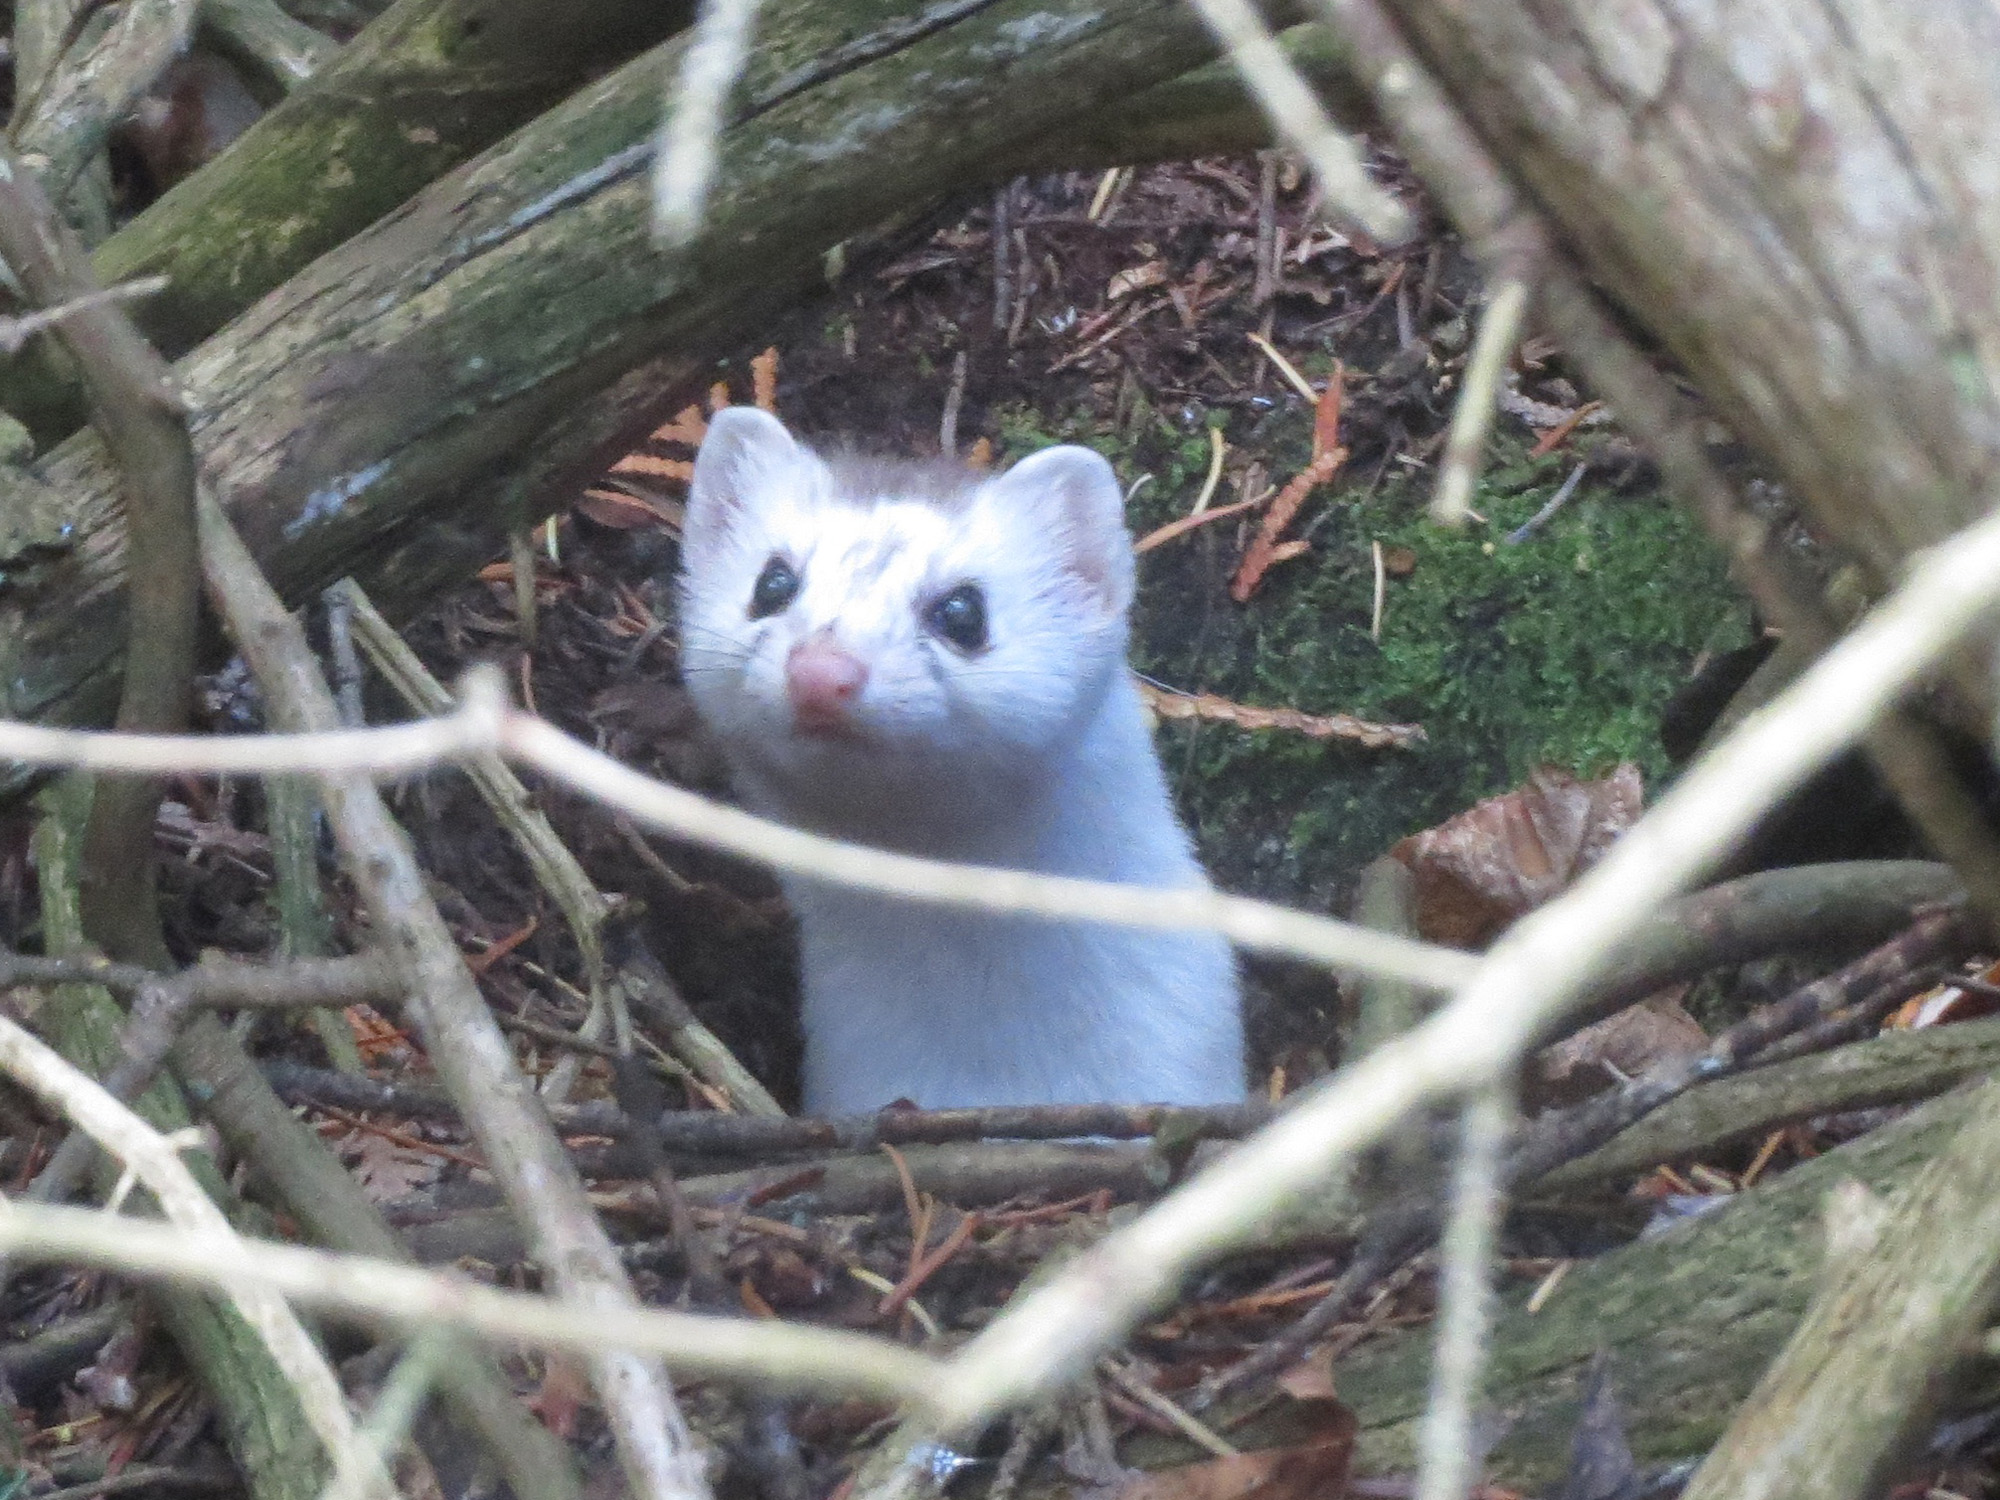 Short-tailed weasel by Nancy Aten